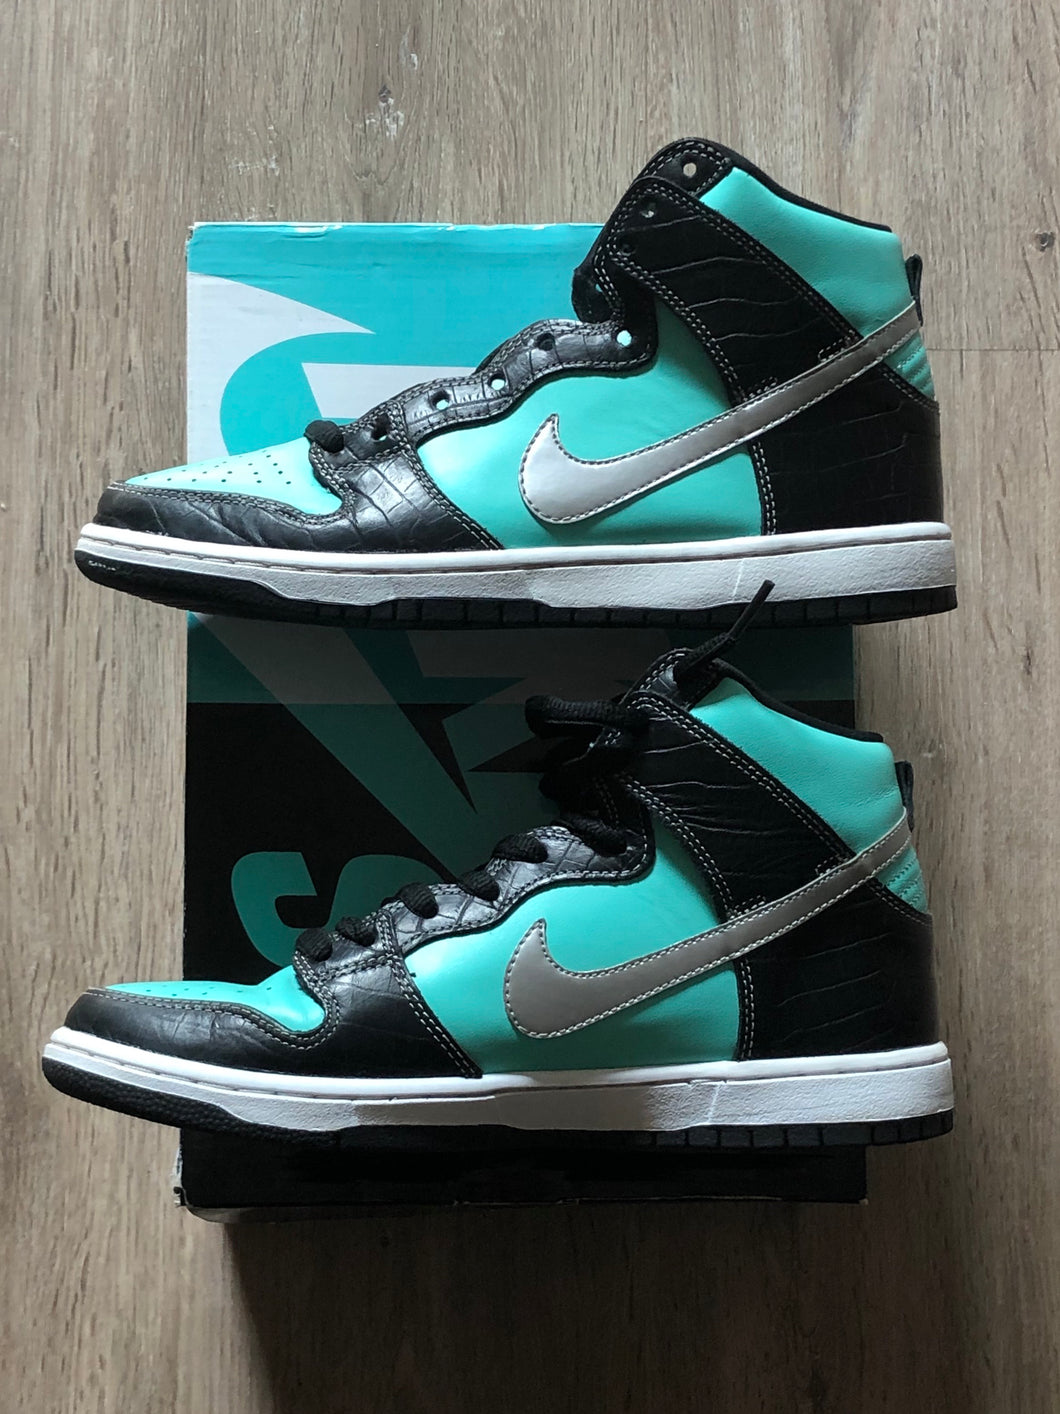 Nike SB Dunk High Diamond Tiffany